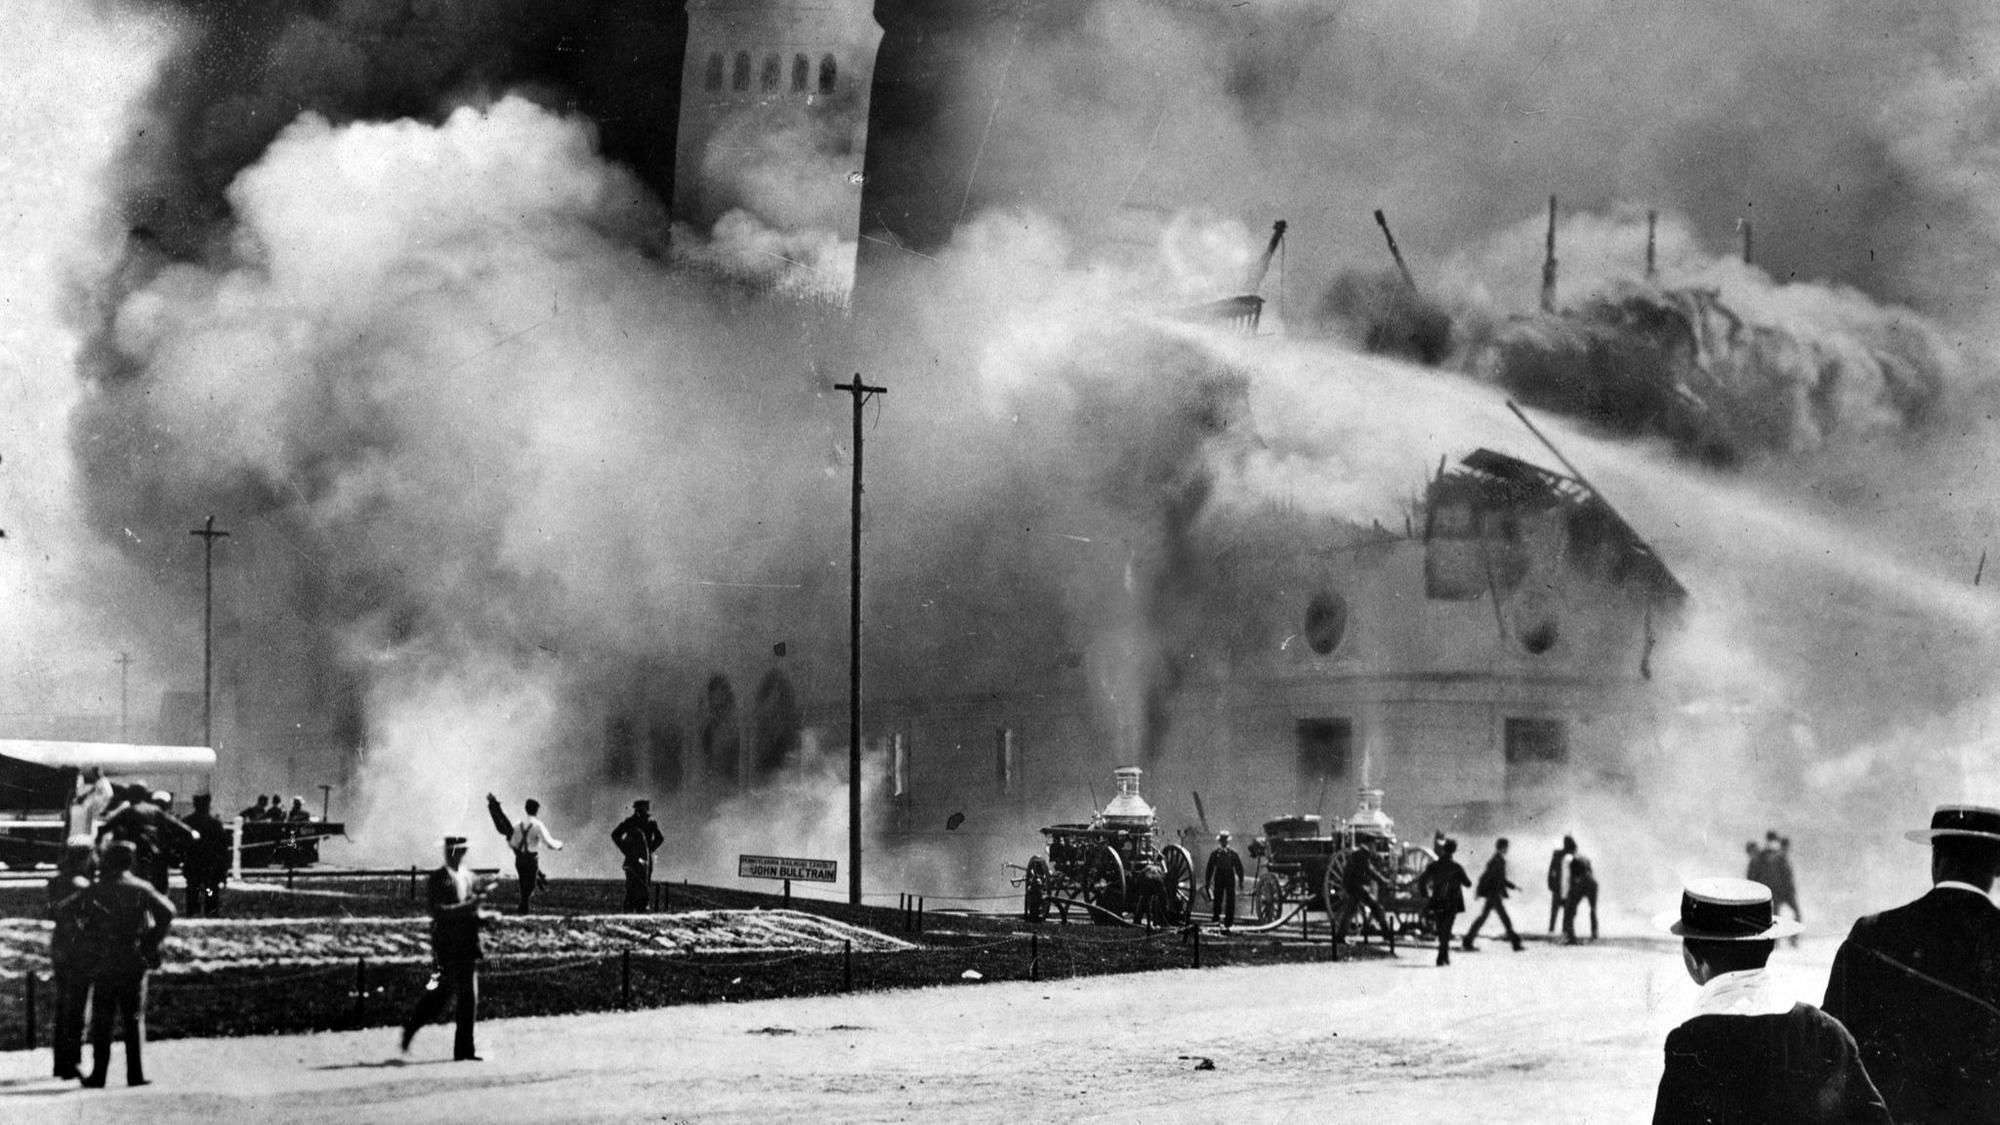 Tragedy at the 1893 World's Fair: Fire killed 16 while crowds watched -  Chicago Tribune